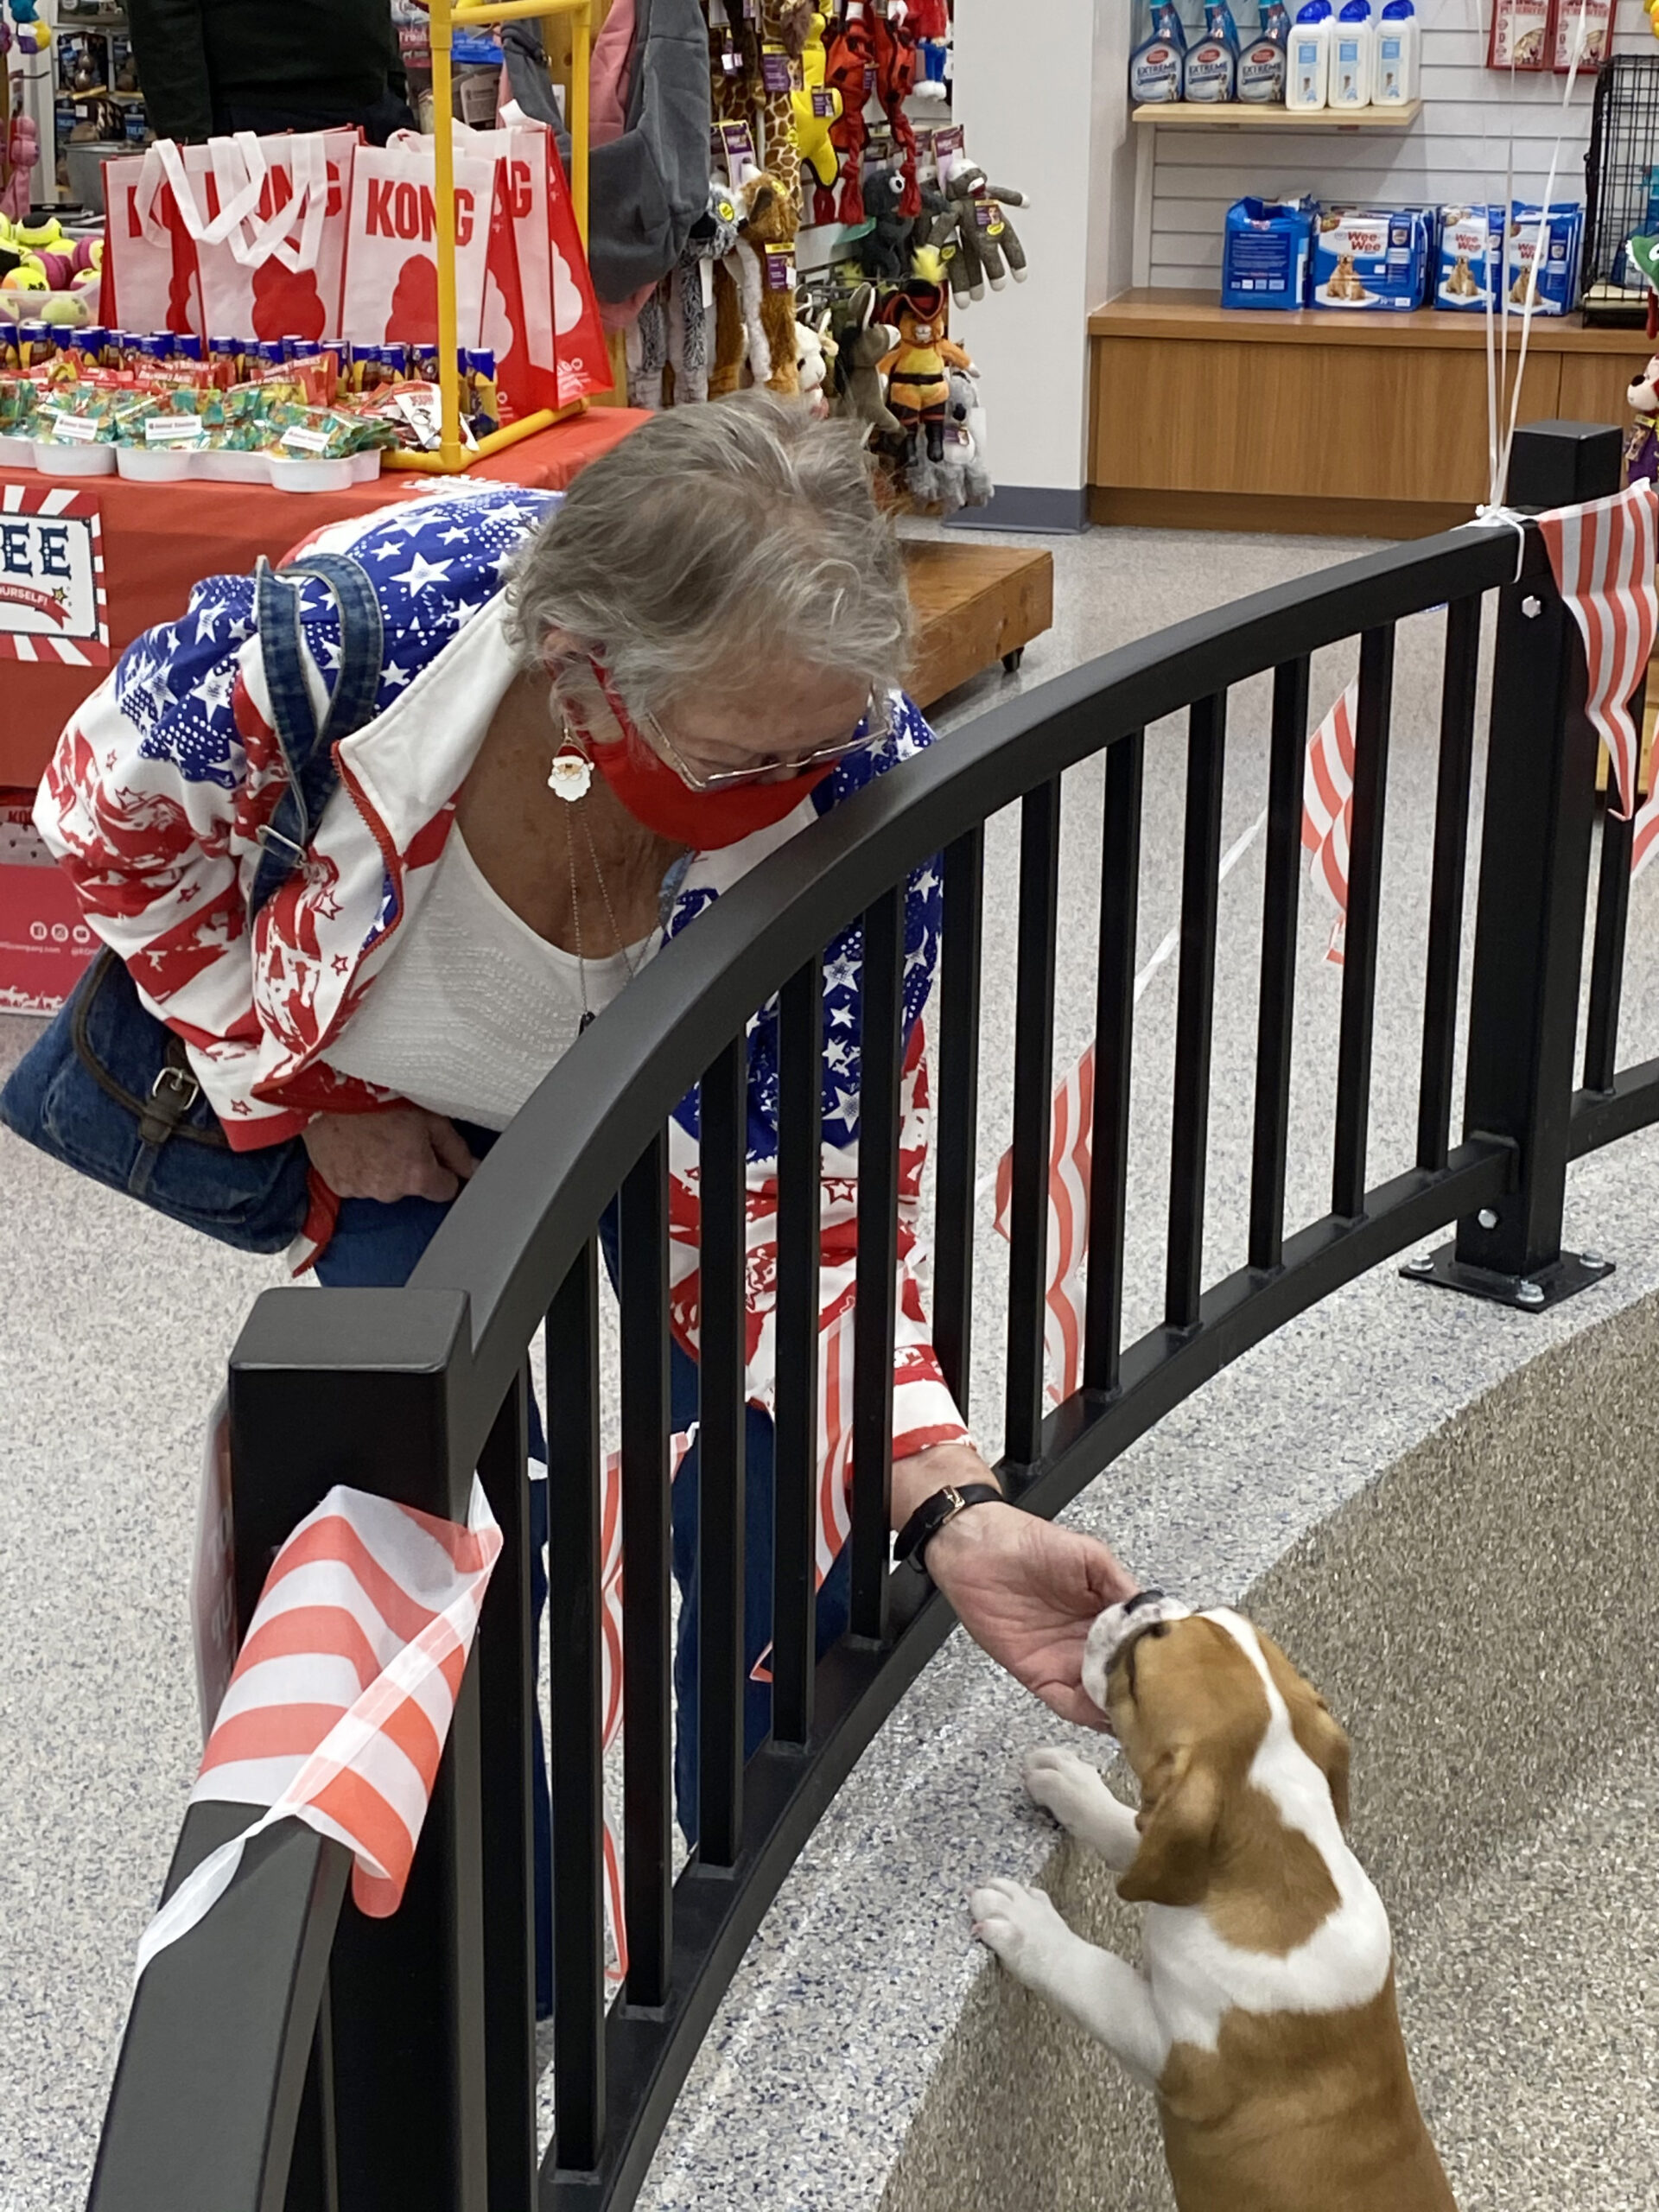 Sheron Jones greets a puppy at the store